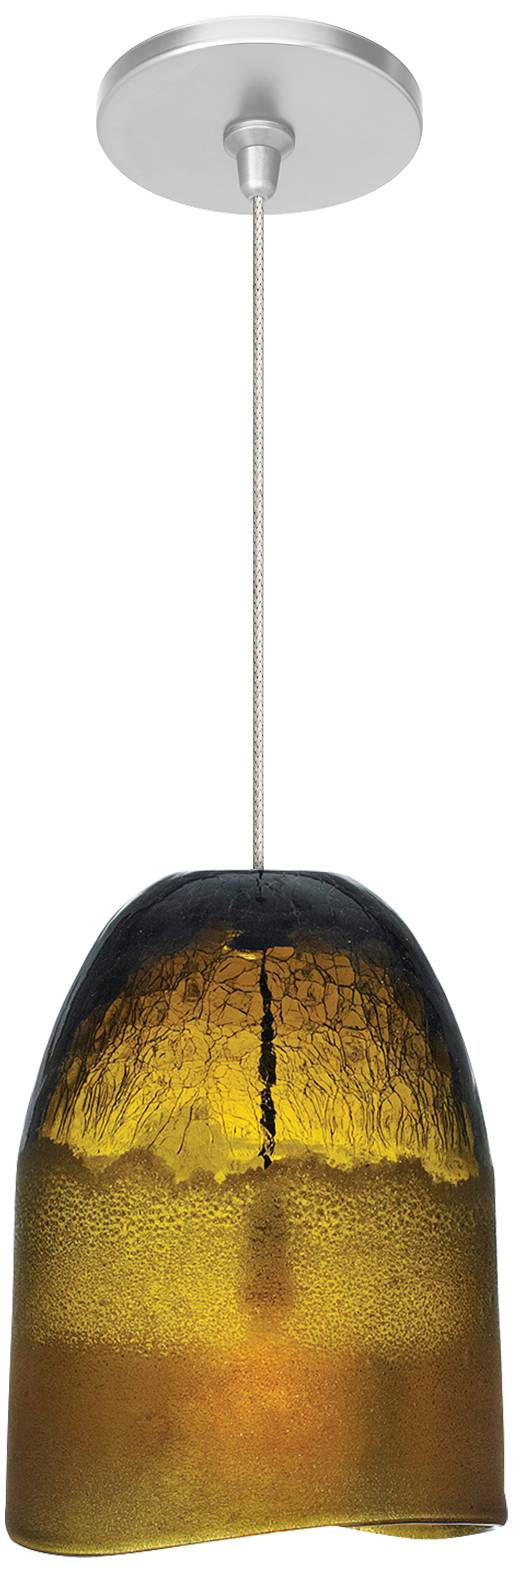 Lbl chill fsj 6 1 4 wide amber ice glass mini pendant 47250 7x519 lamps plus